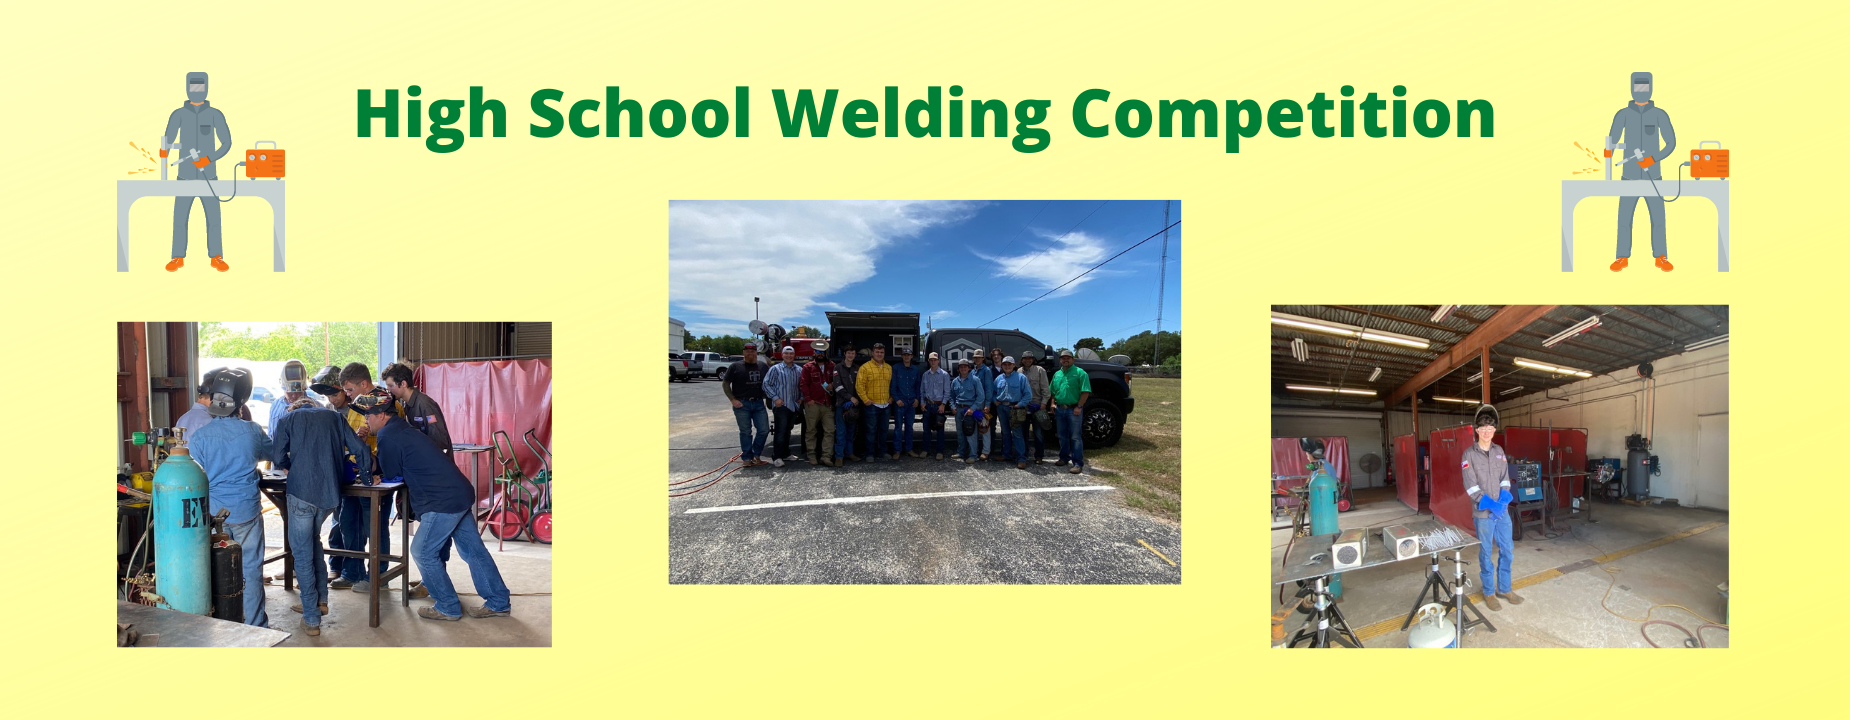 High School Welding Competition